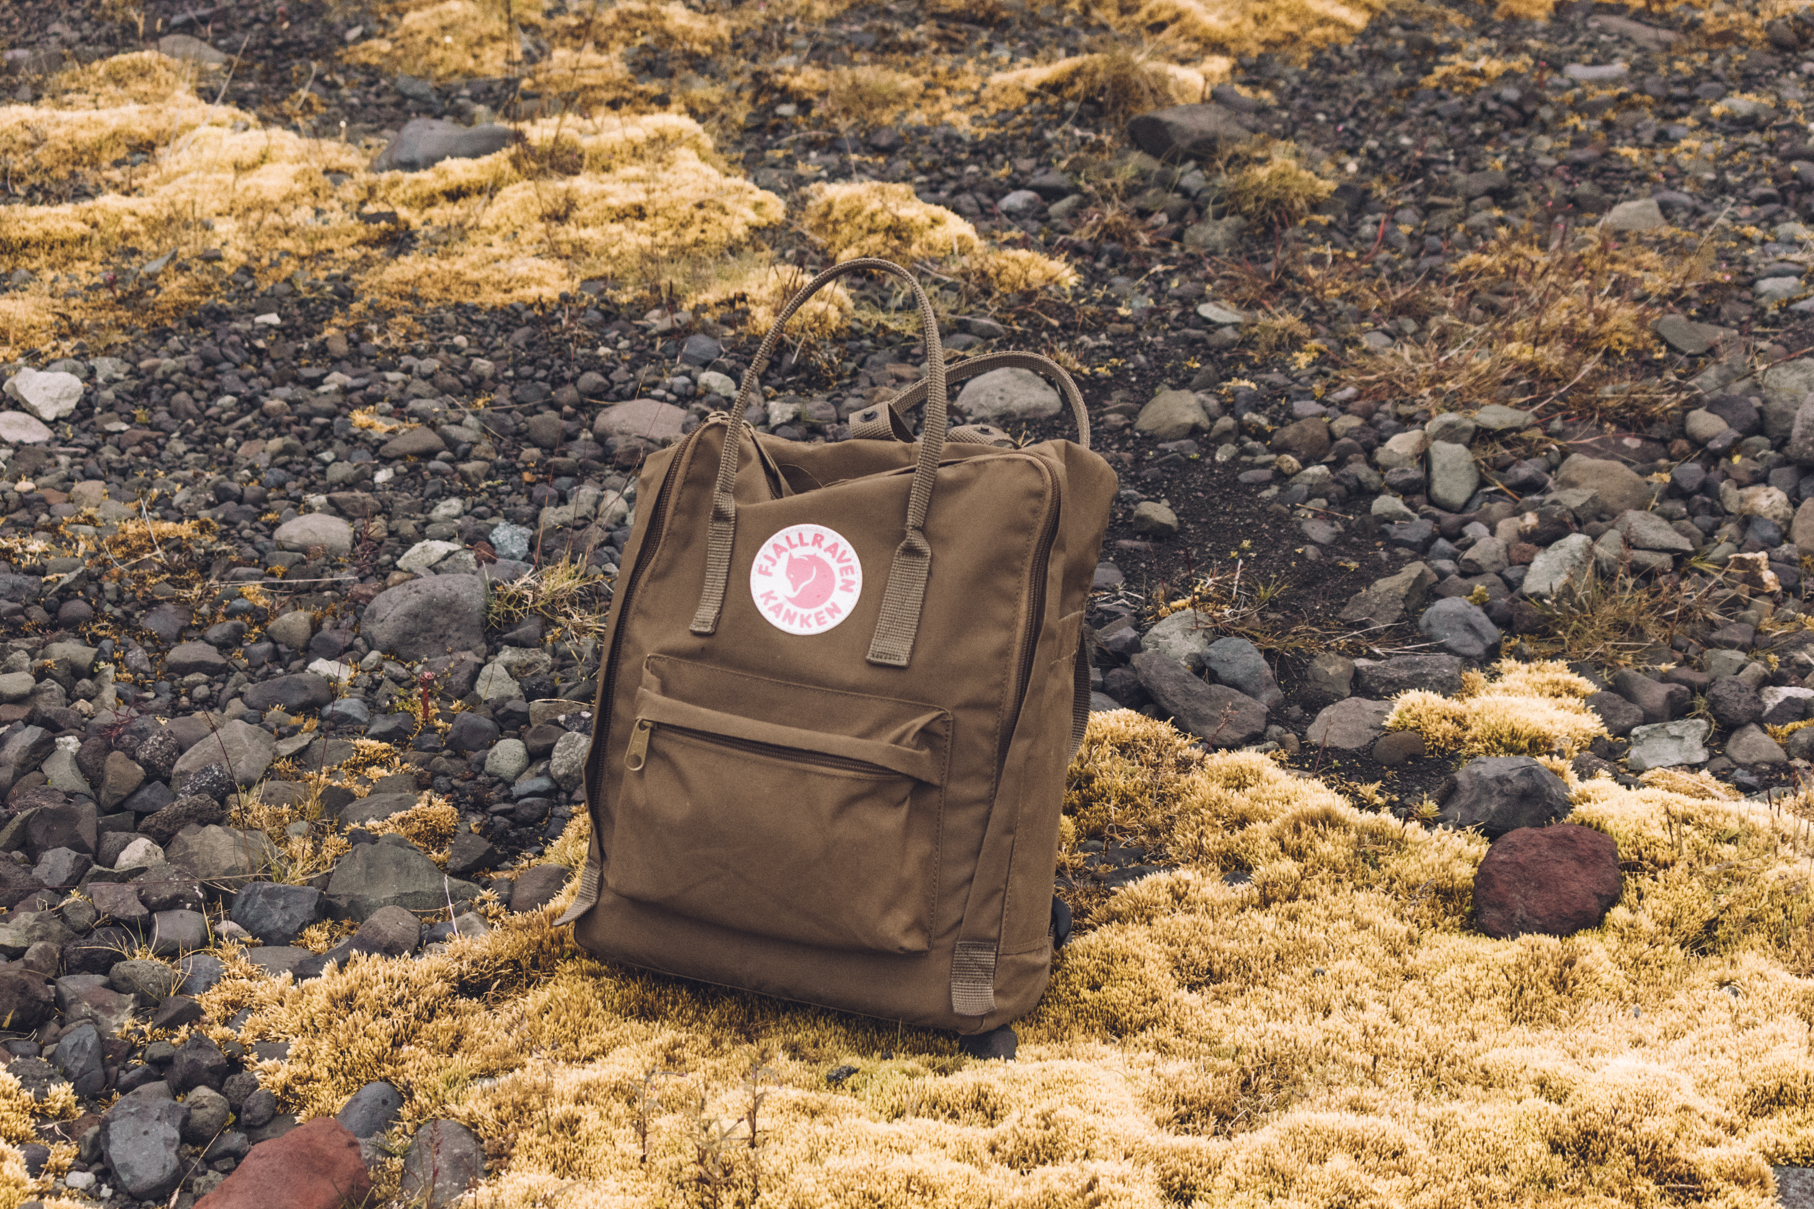 Essentials to pack for your Iceland trip